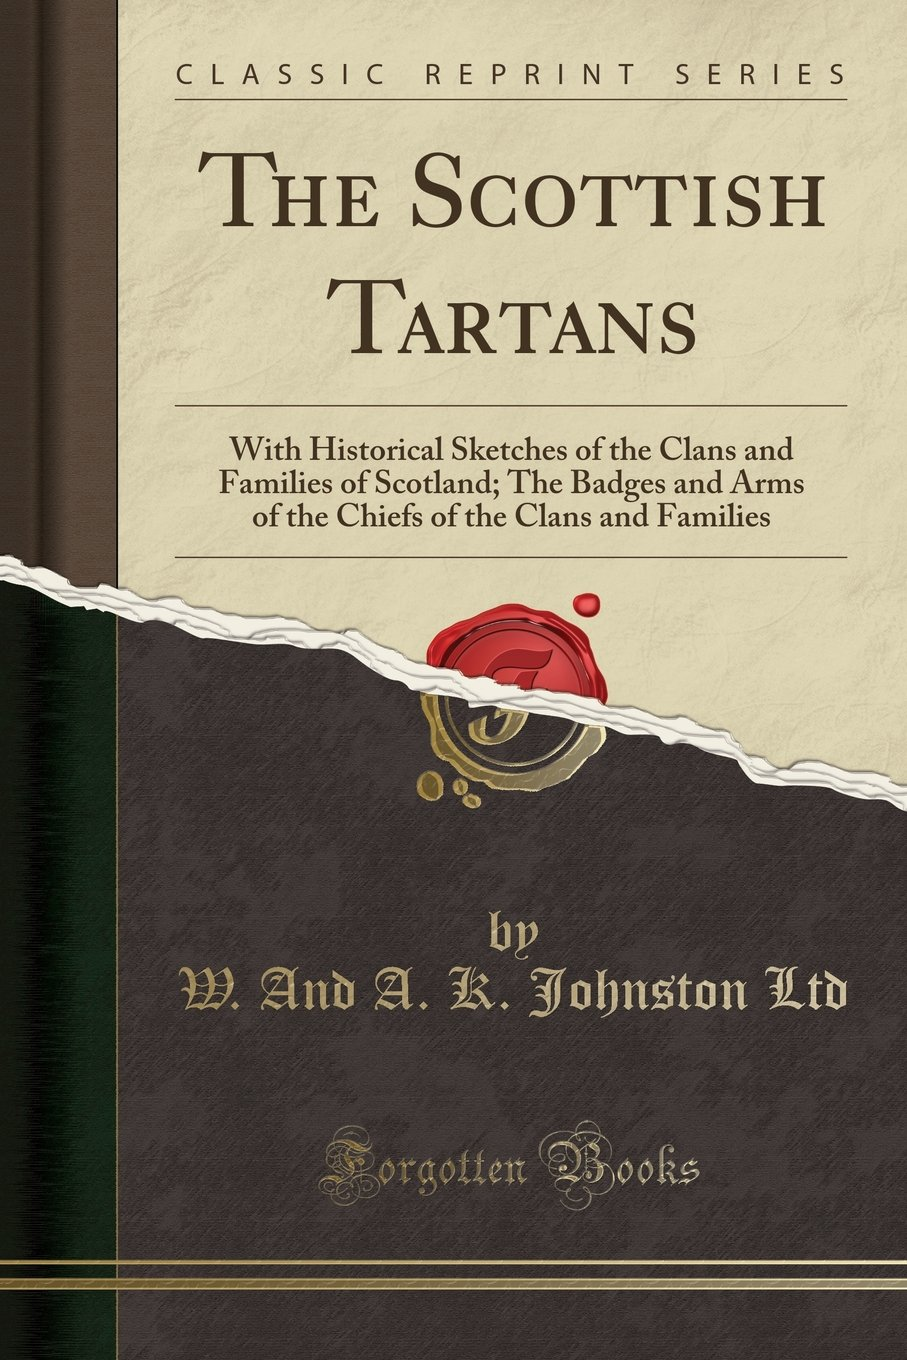 The Scottish Tartans: With Historical Sketches of the Clans